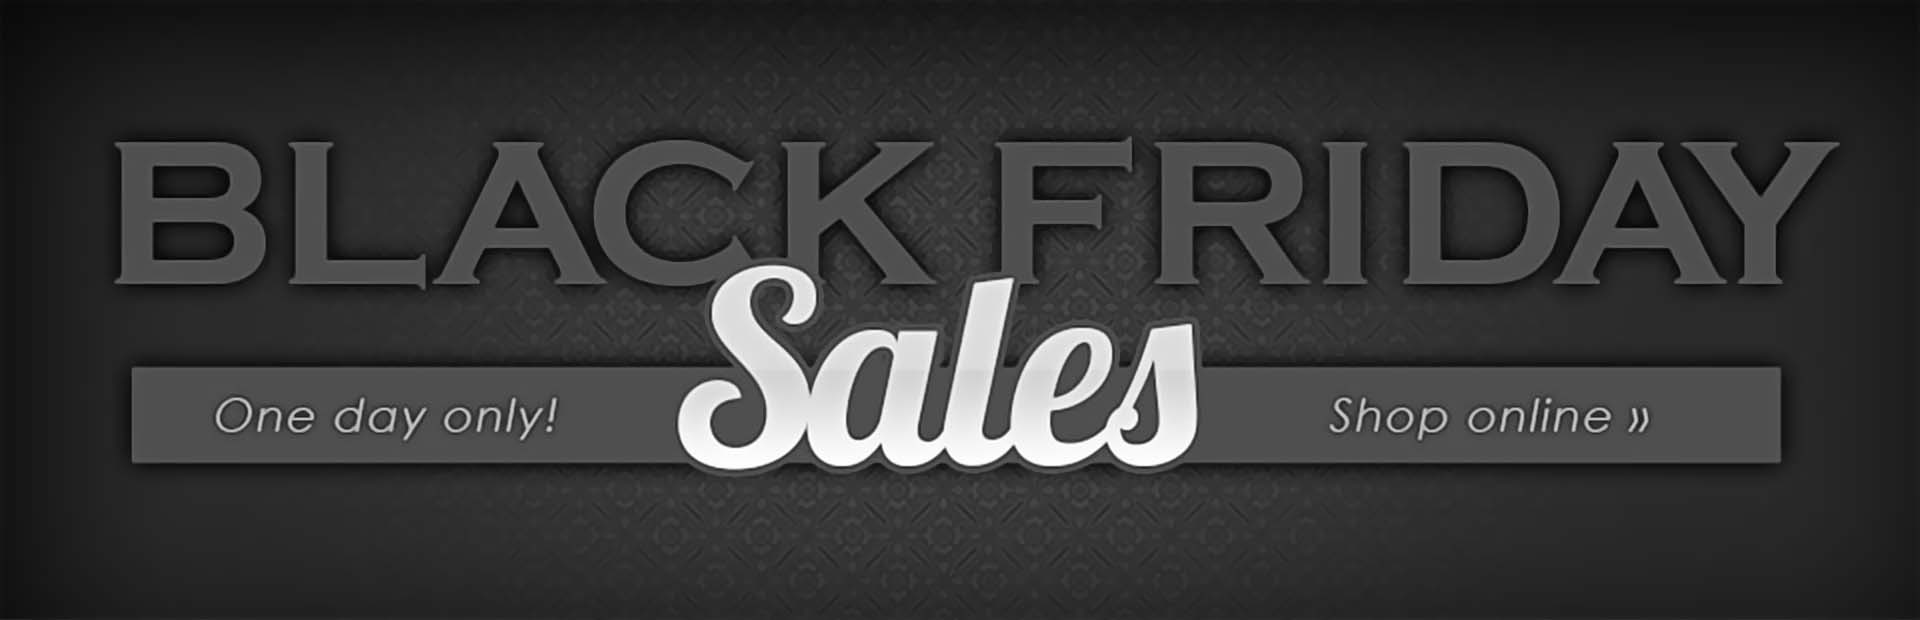 Check out our Black Friday Sales for one day only! Click here to shop online.